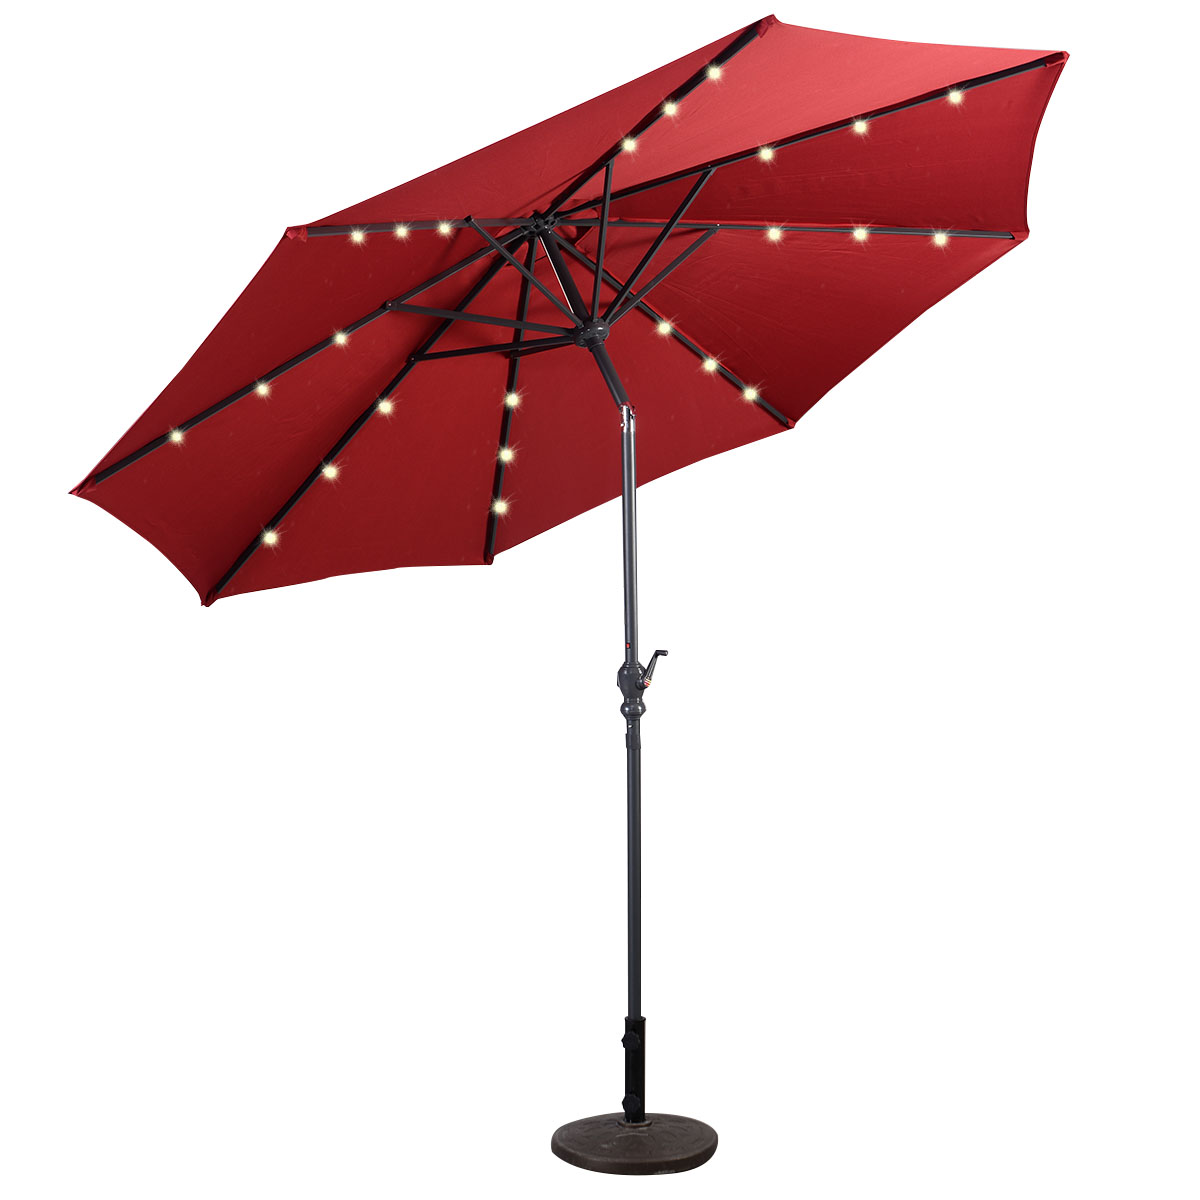 Led Patio Umbrella Reviews: 9' Deluxe Solar Powered LED Lighted Patio Umbrella, Tan